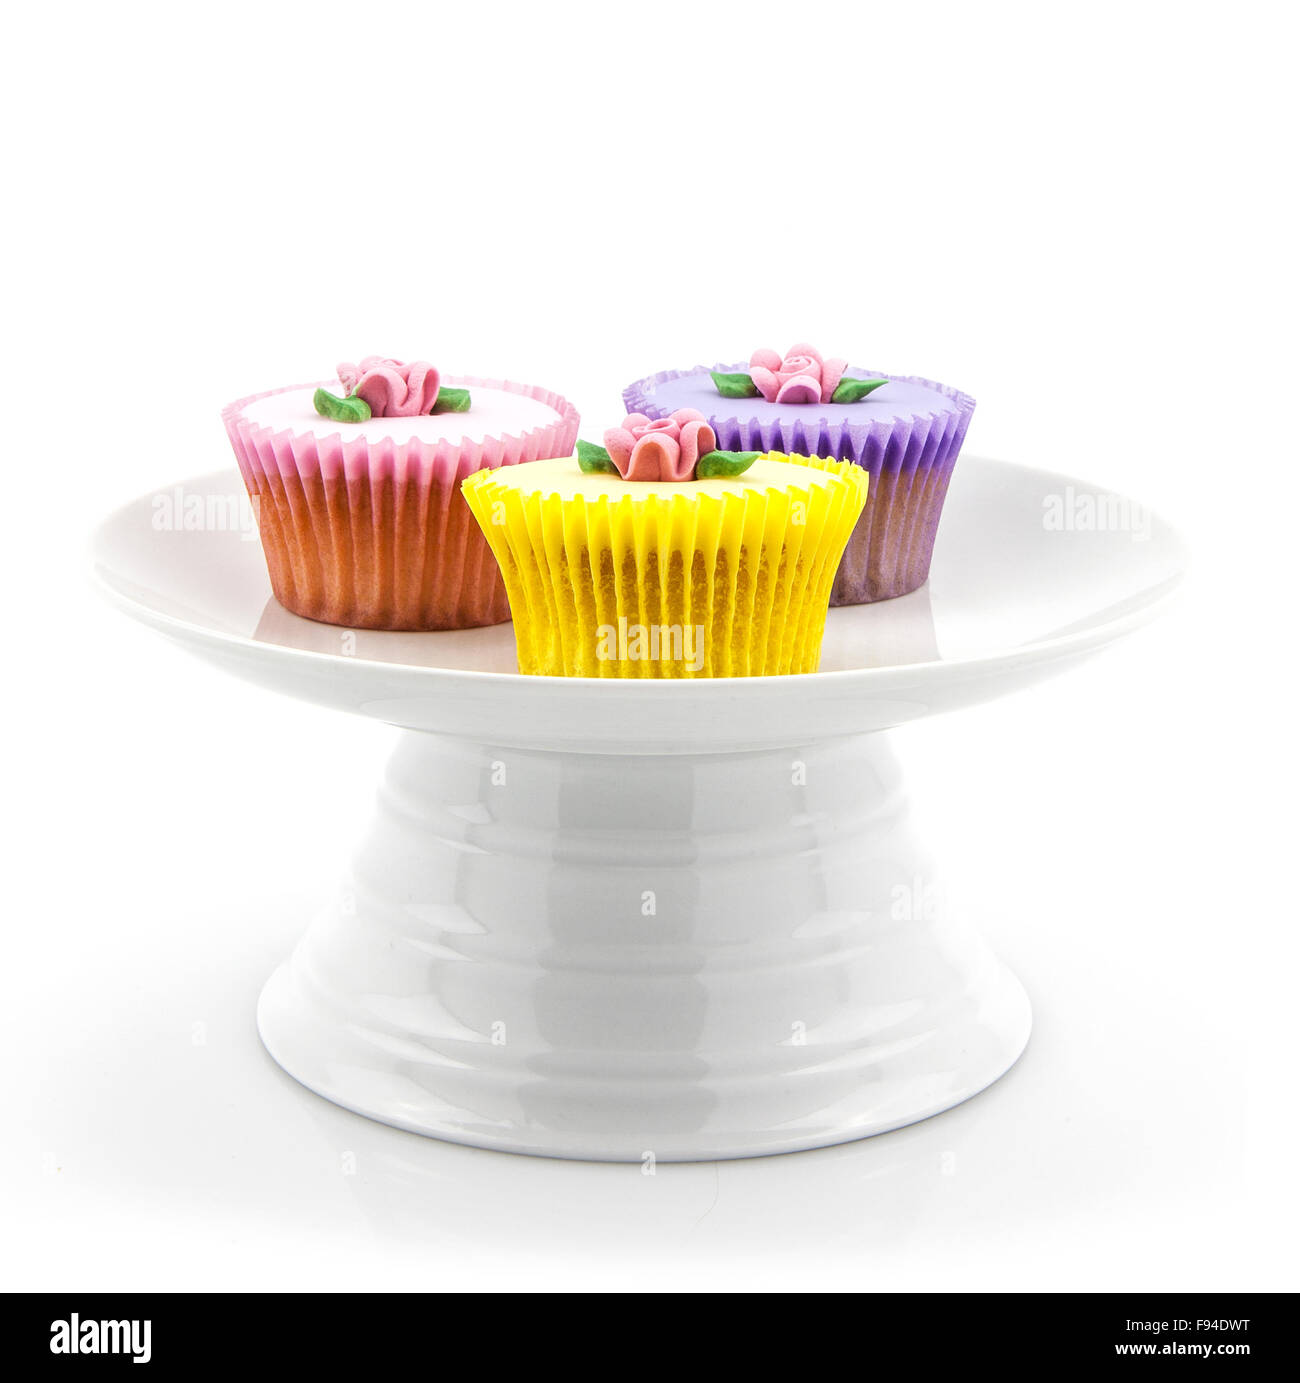 Sélection Cupcake sur la porcelaine blanche stand Photo Stock